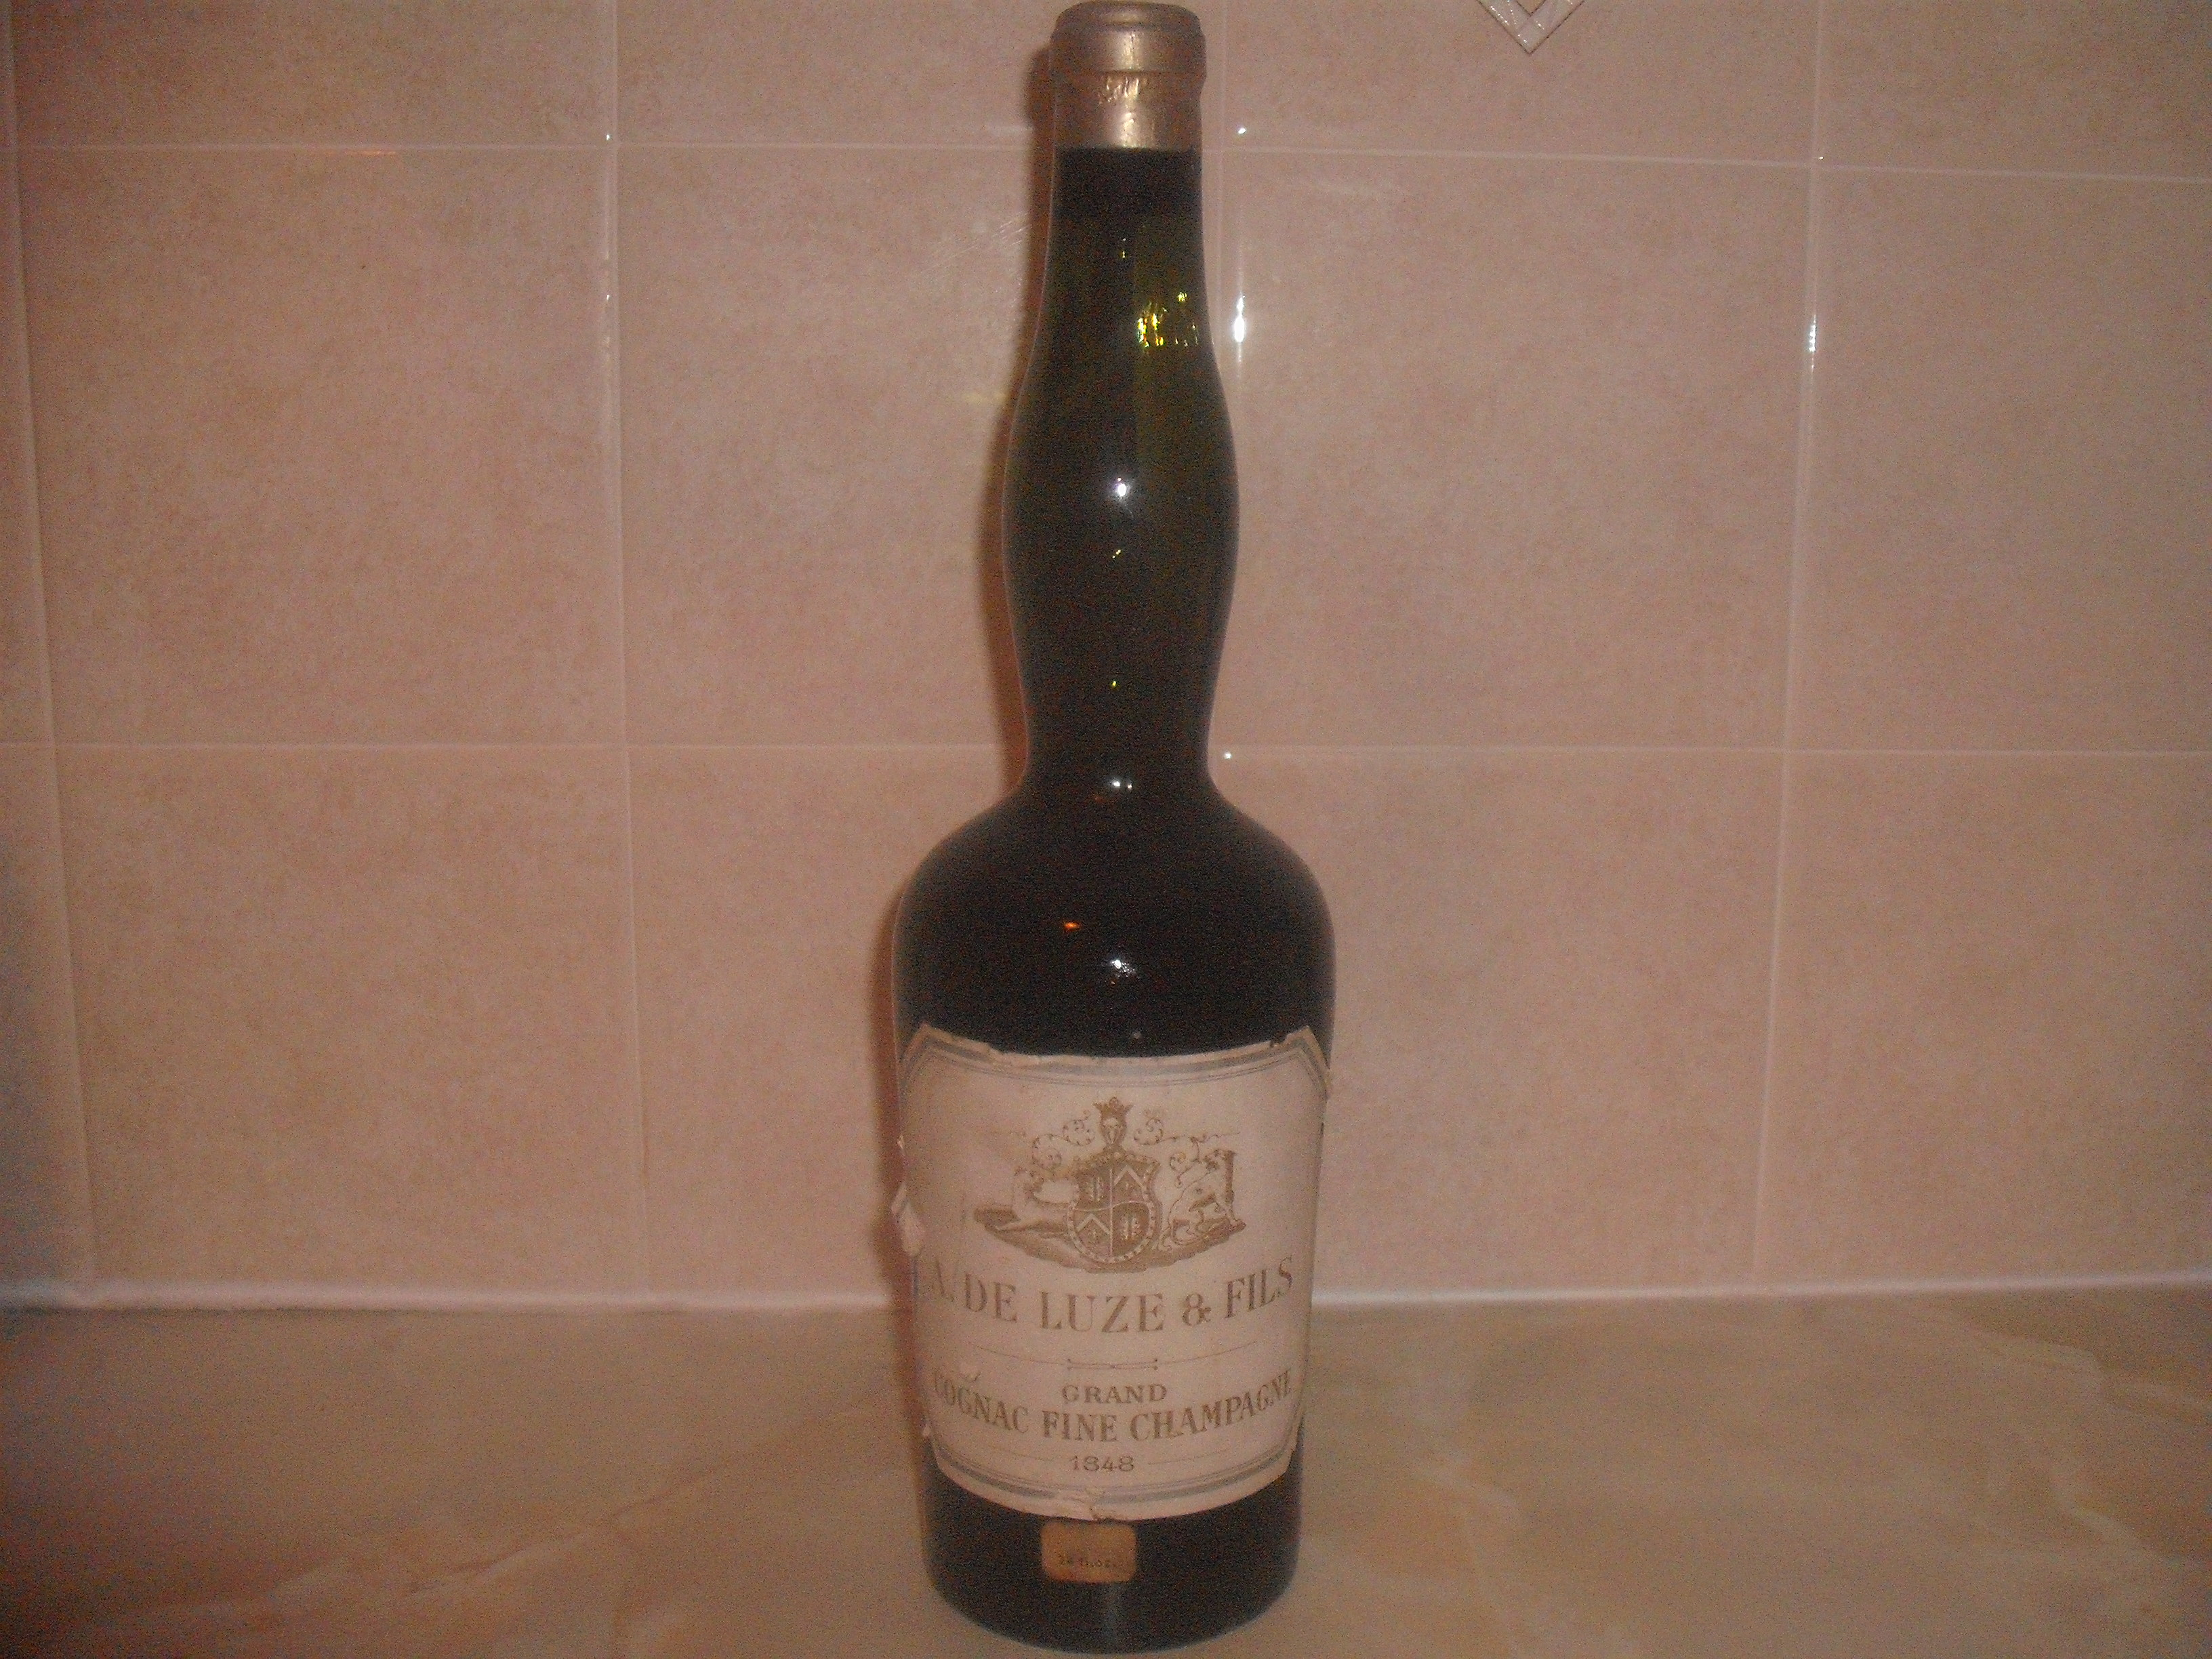 A De Luze Old bottle